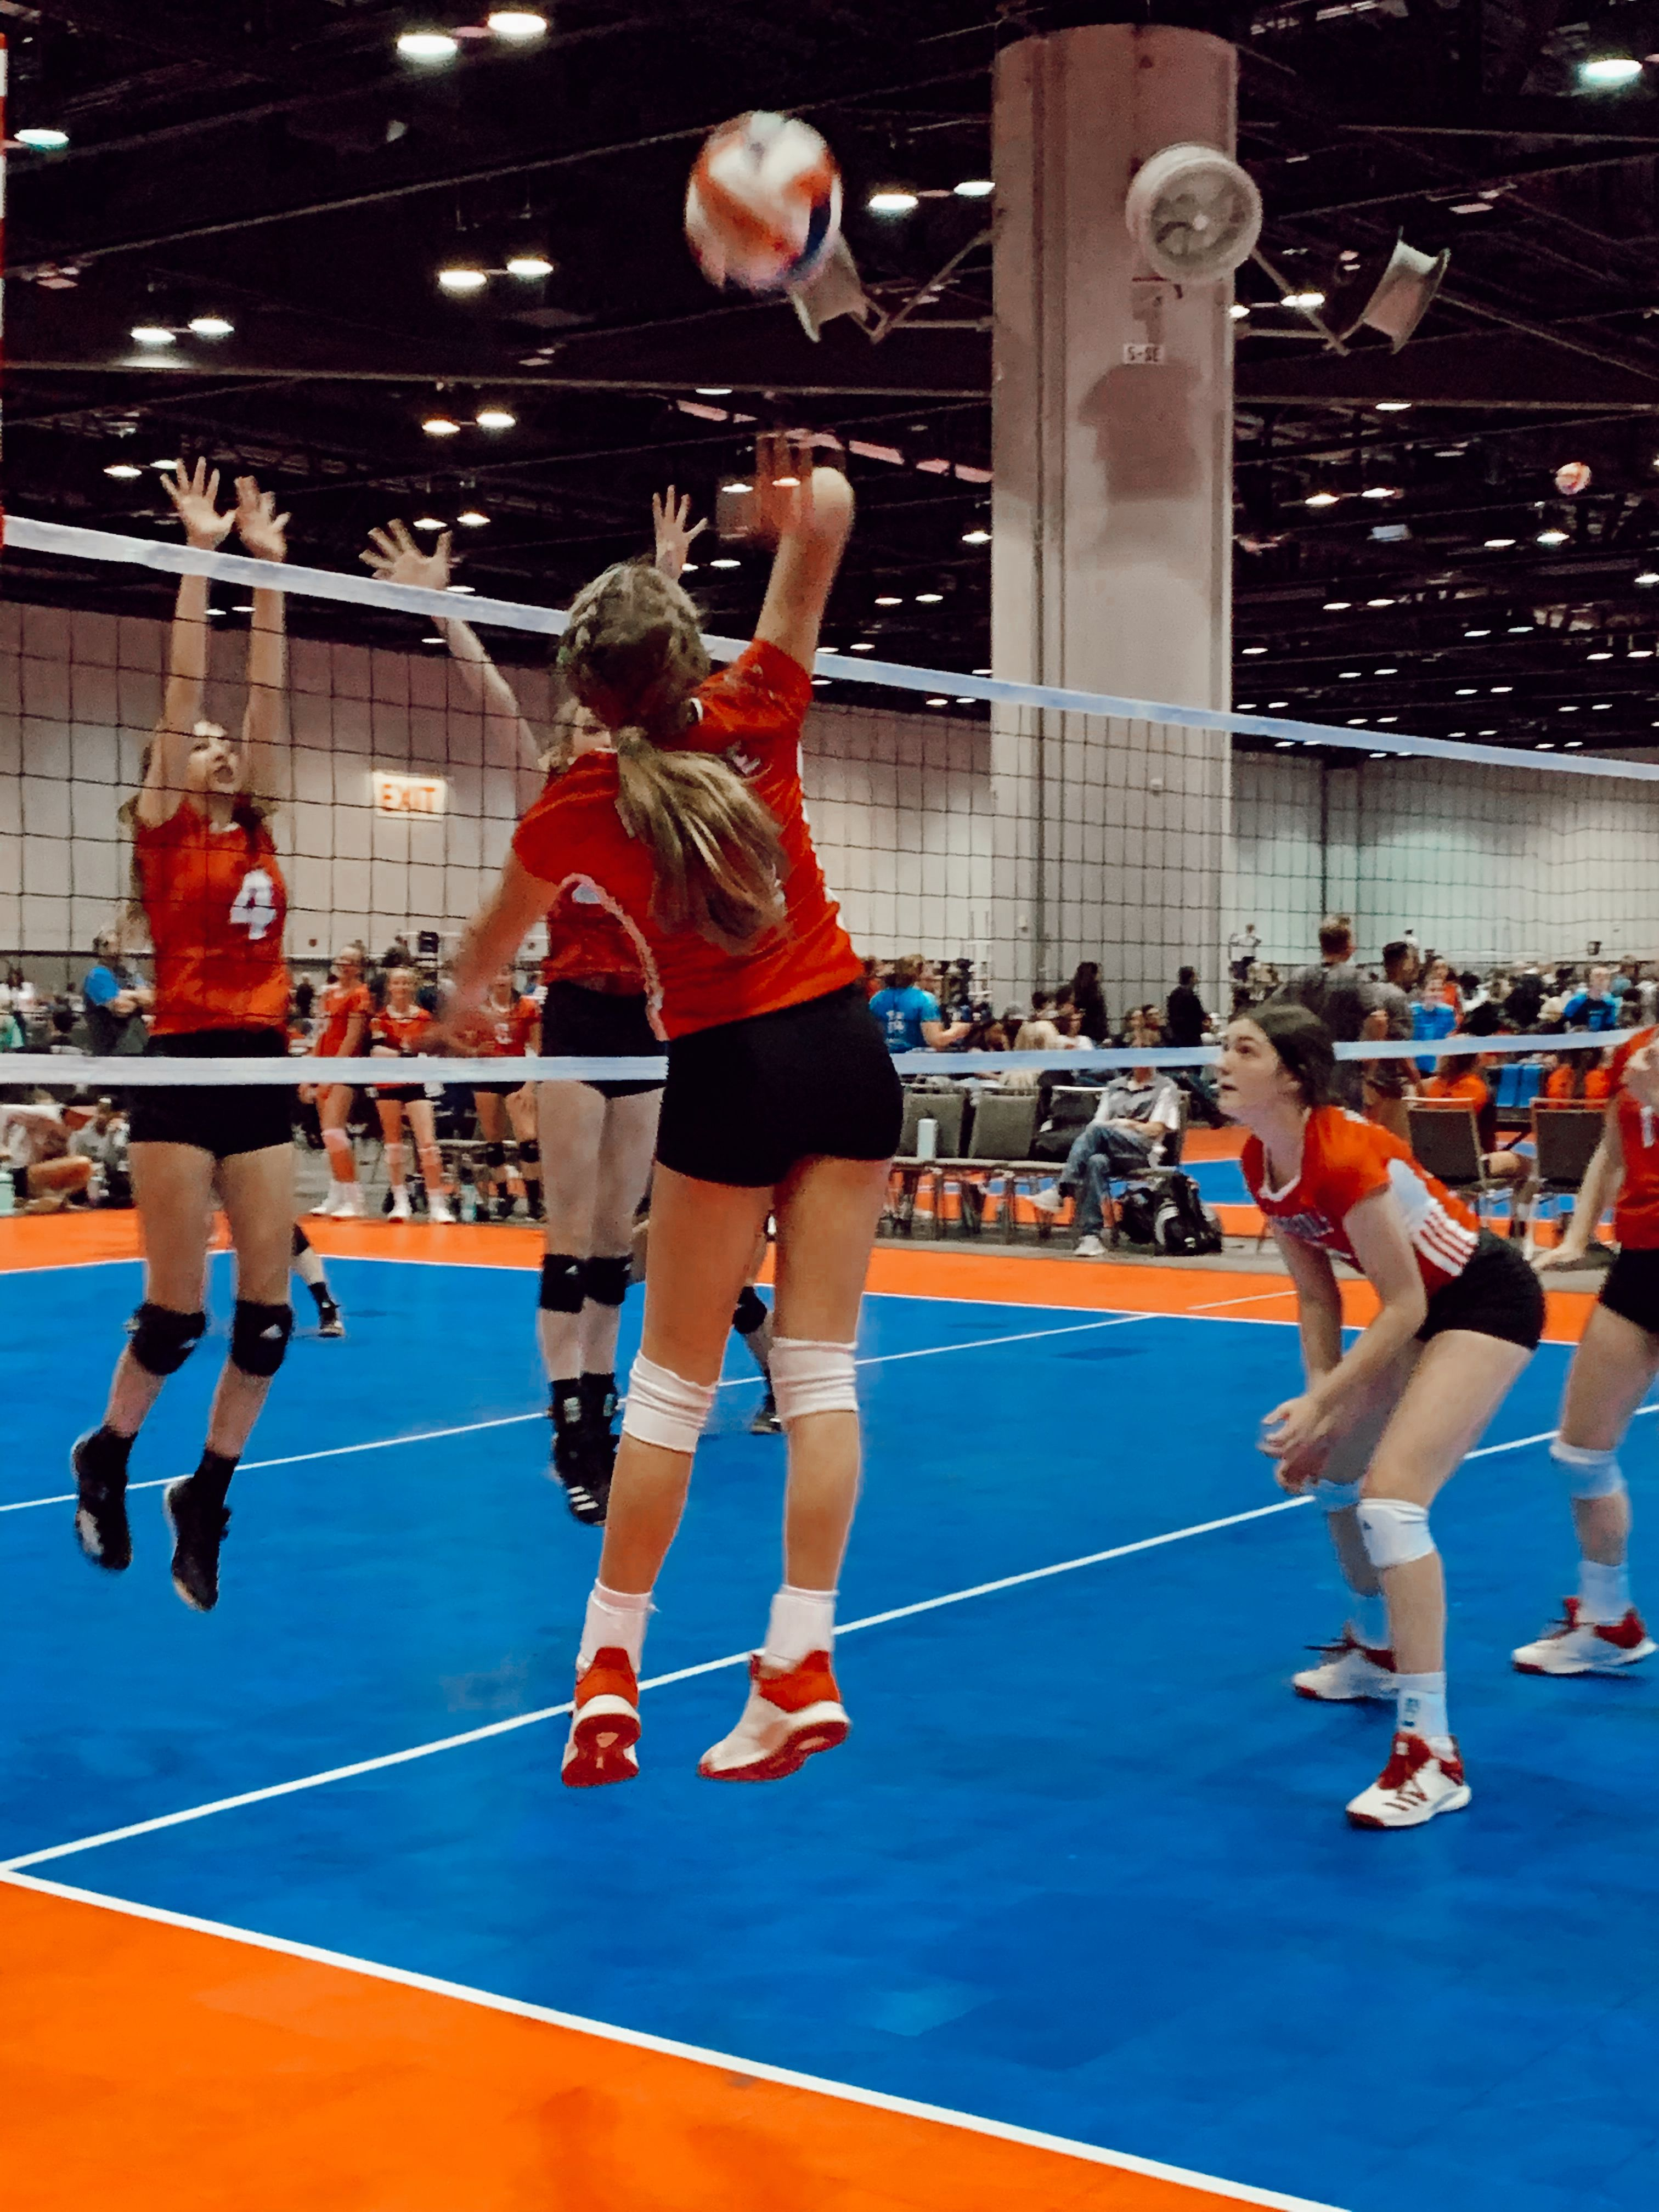 Pin By Syd On Volleyball In 2020 Volleyball Basketball Court Red River